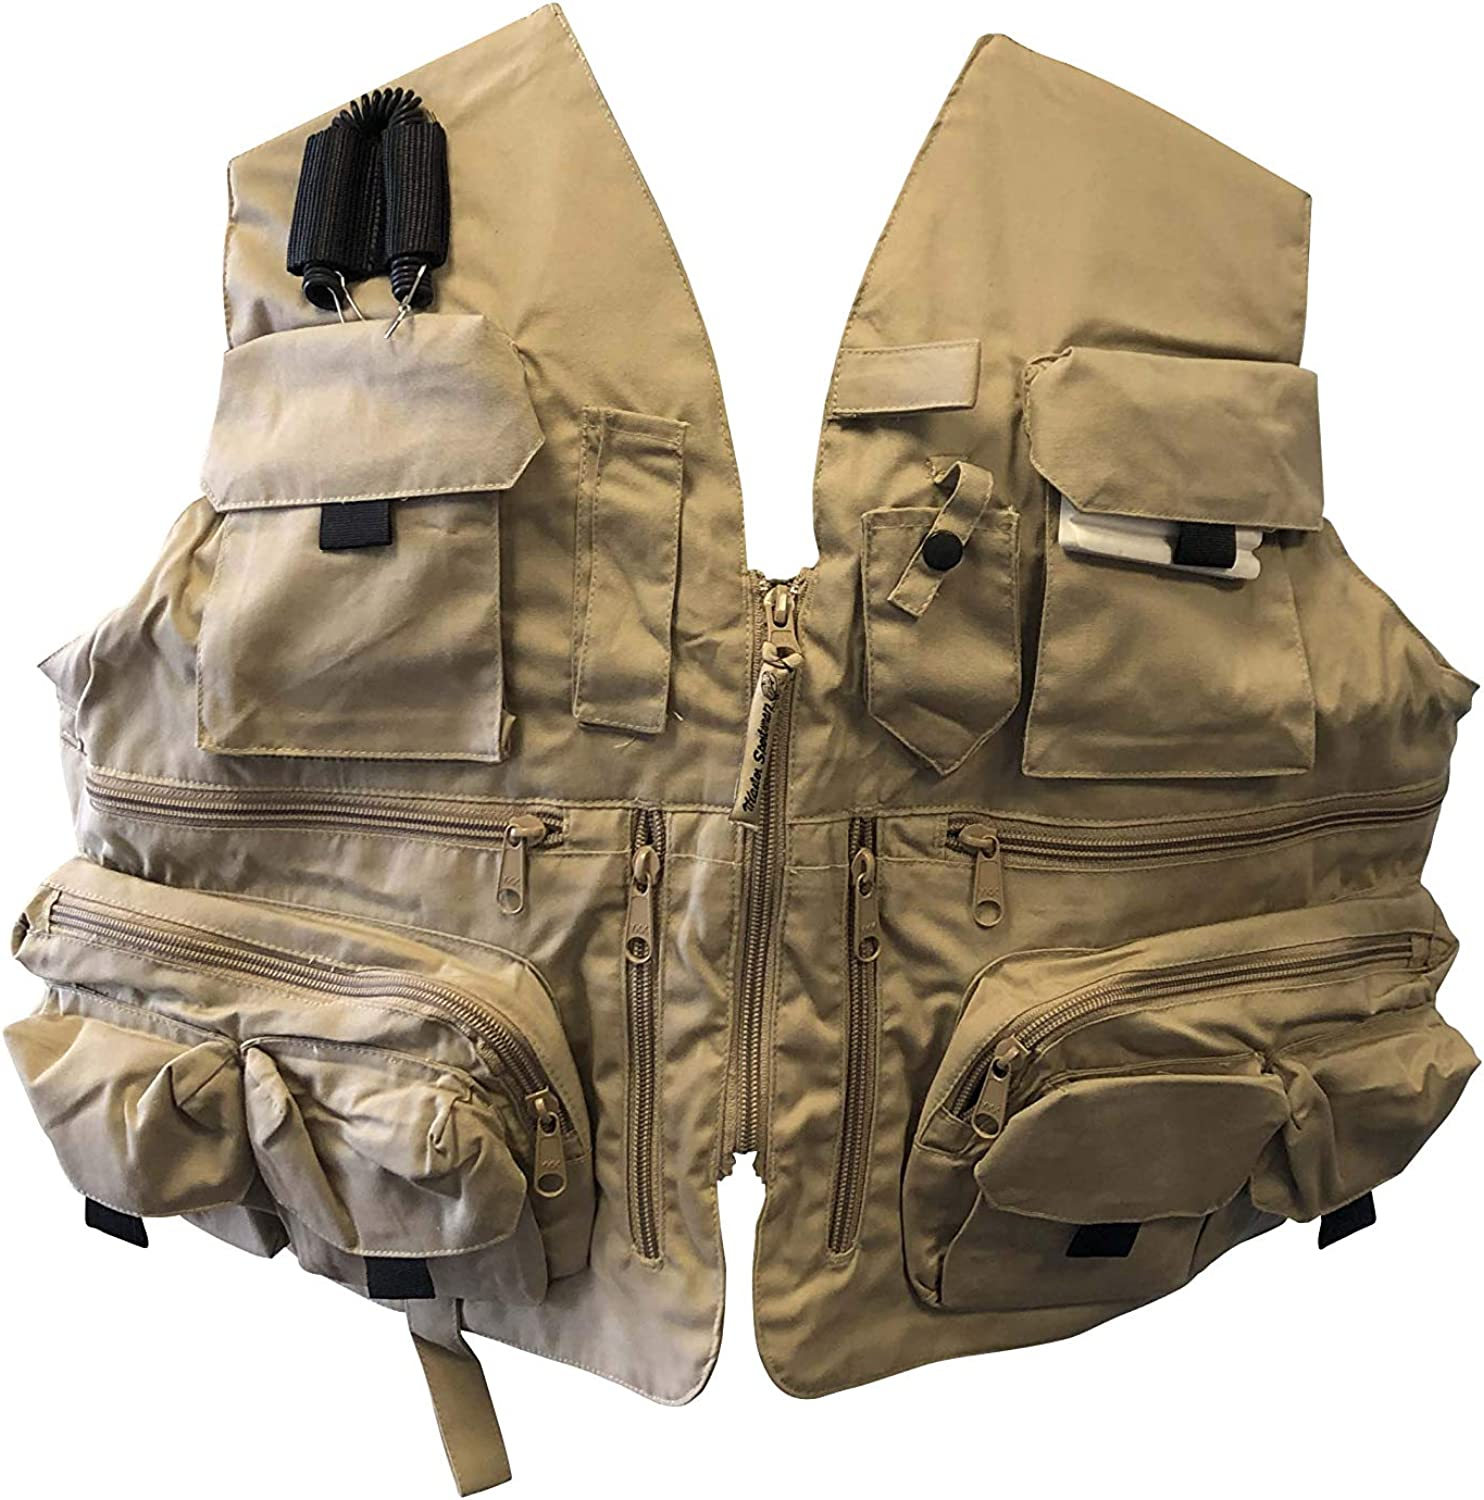 Nickanny's Sportsman Rugged Outdoor Fishing New York Mall 2021 spring and summer new Gear 24 Po Vest with